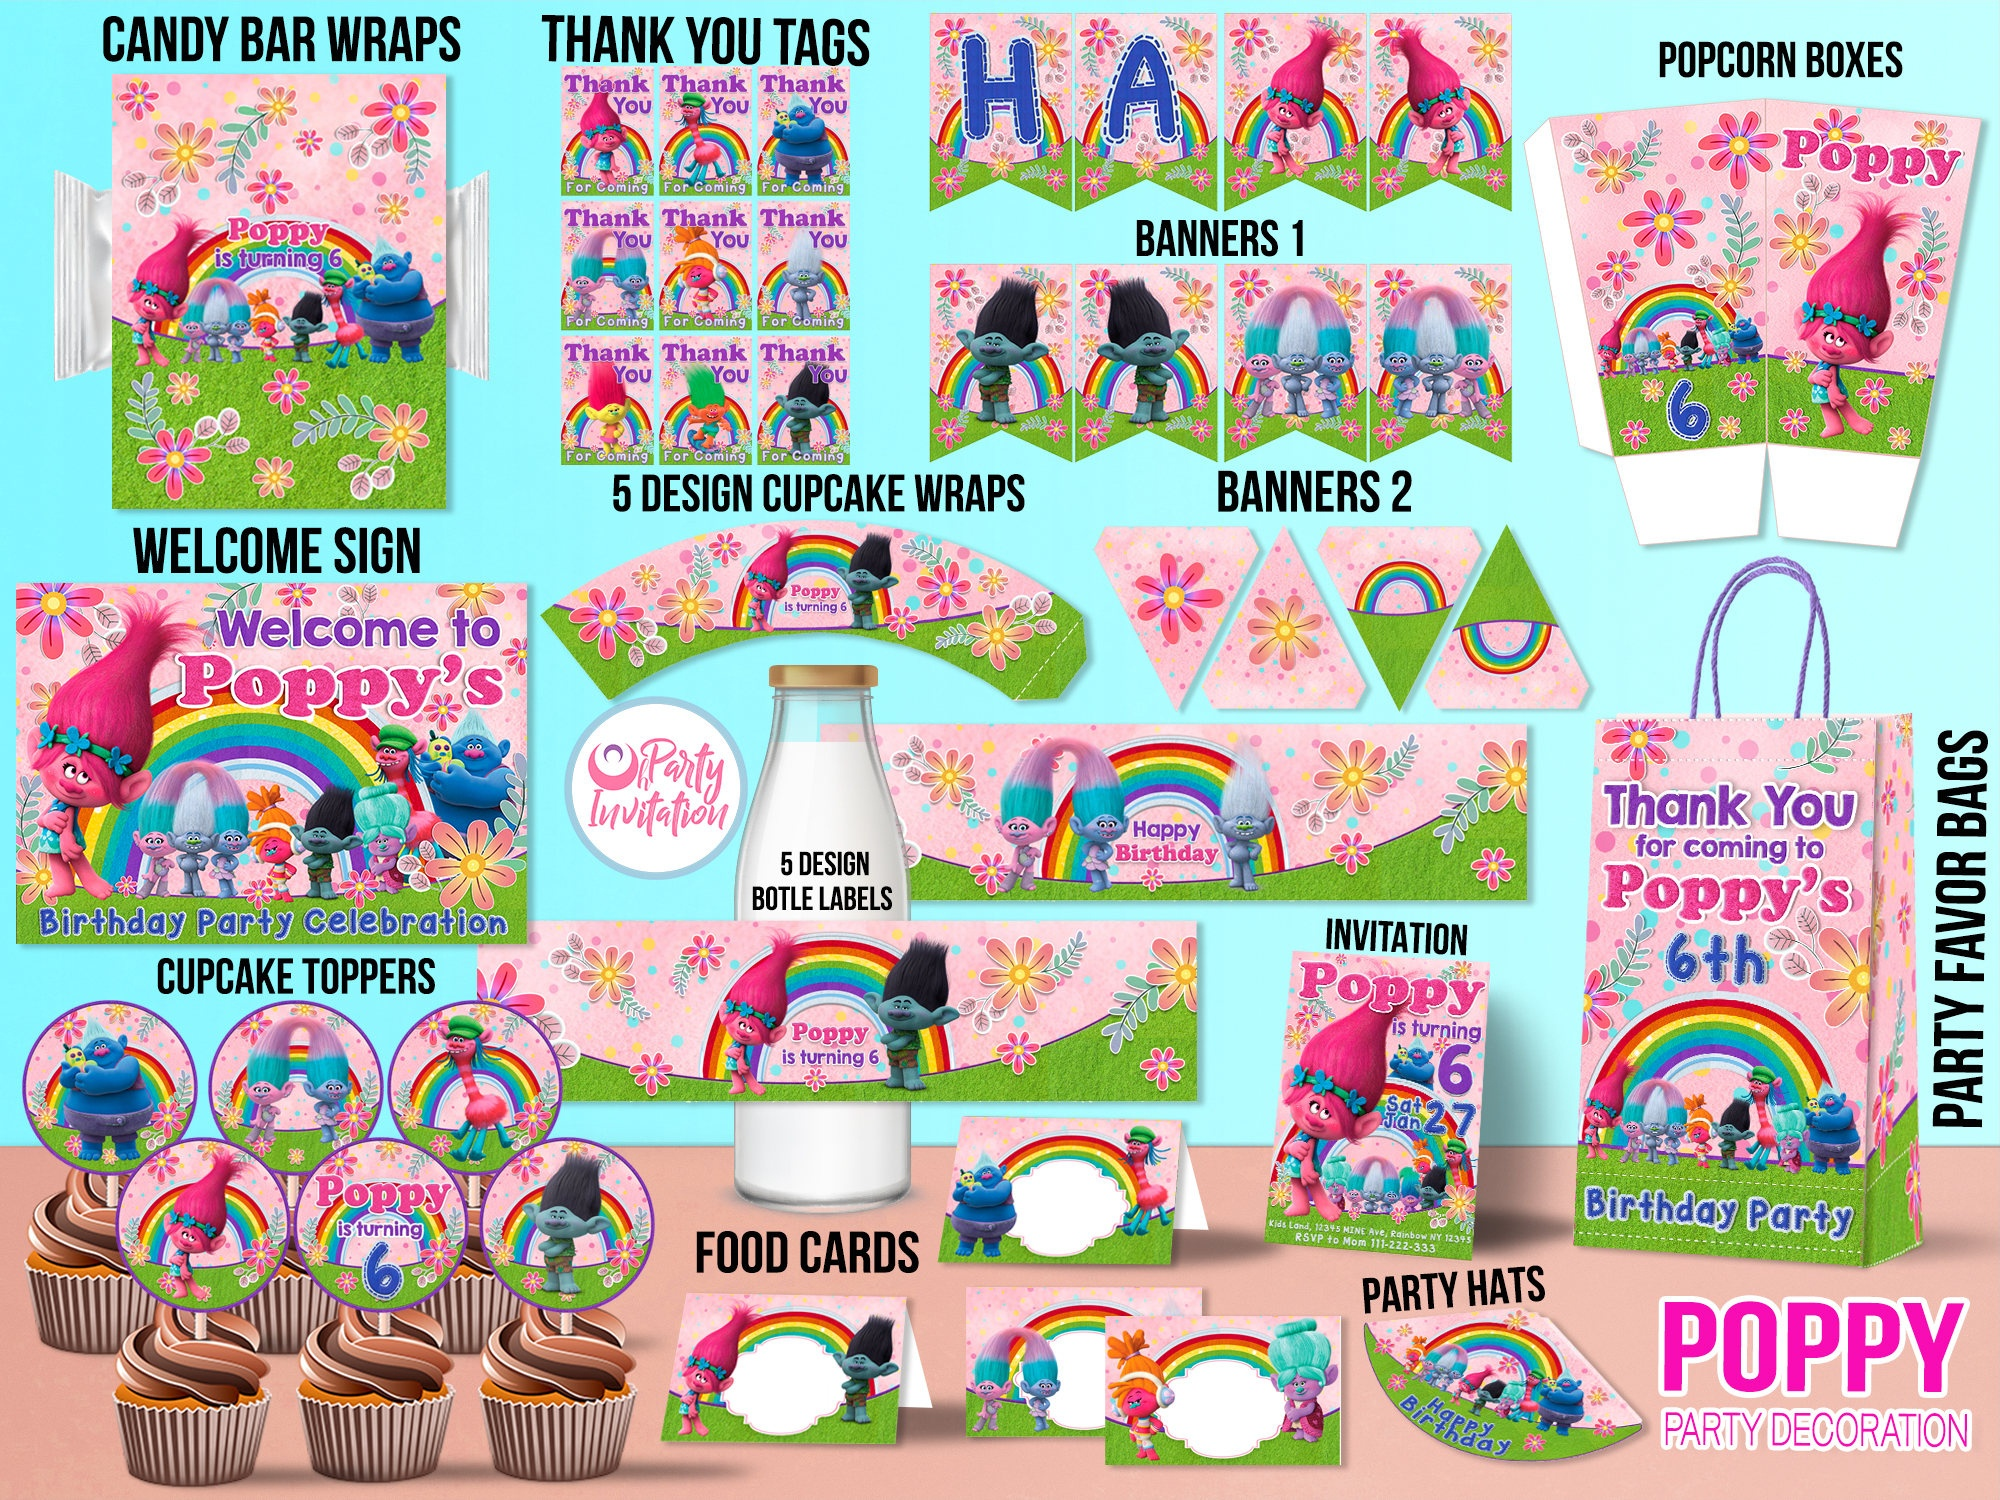 The Best Trolls Birthday Party Ideas - Happiness Is Homemade - Free Trolls Printables